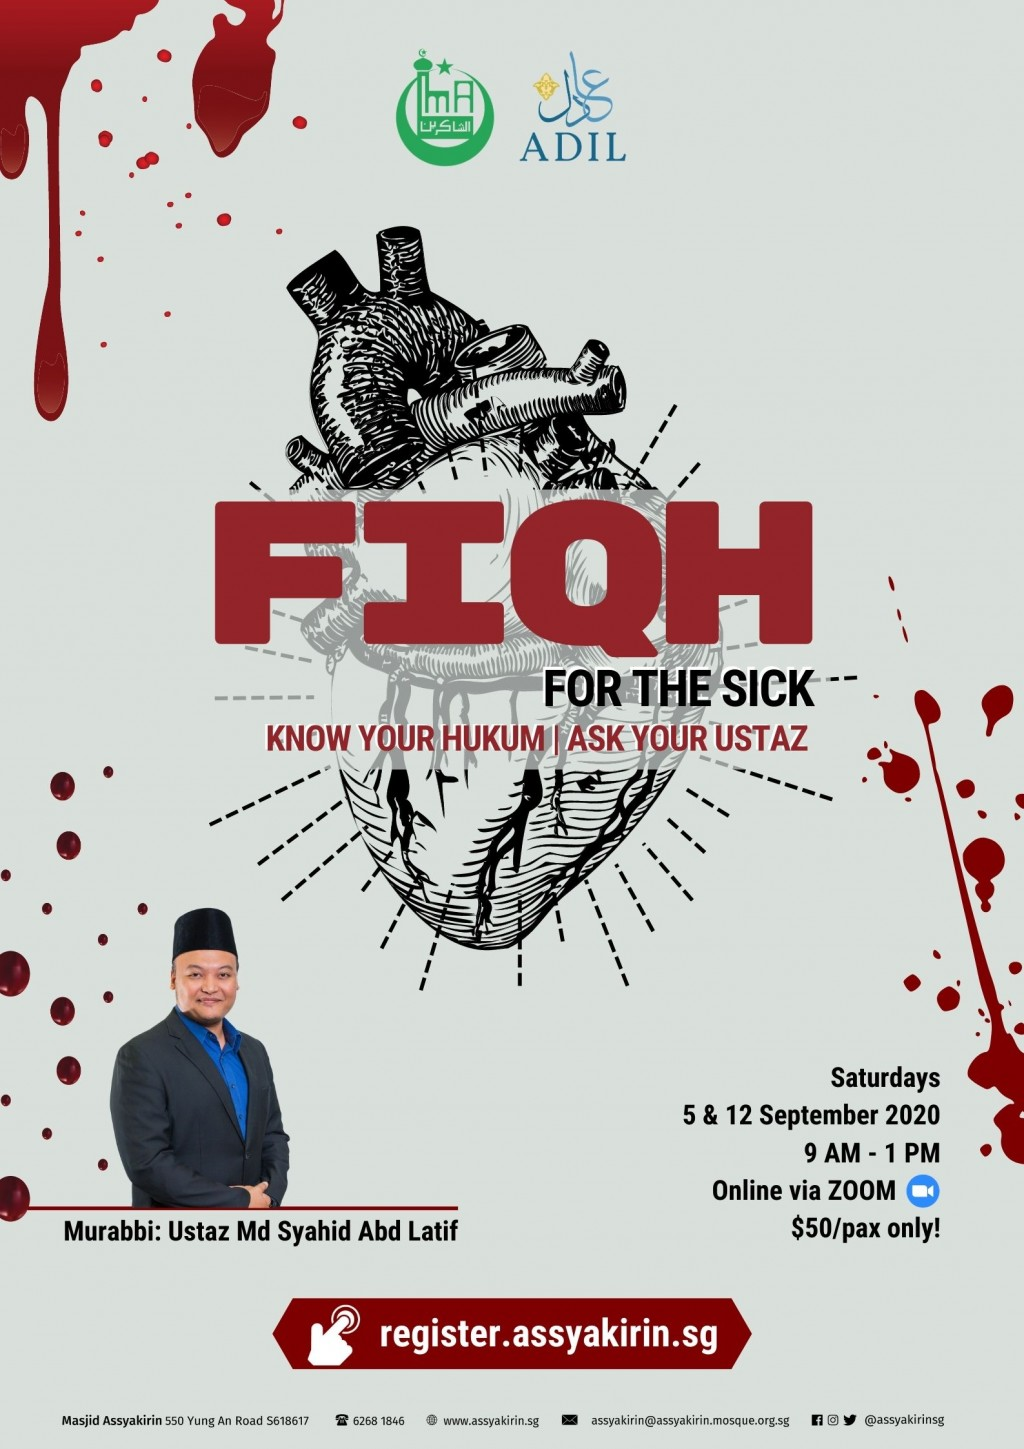 ADIL: Fiqh for the Sick